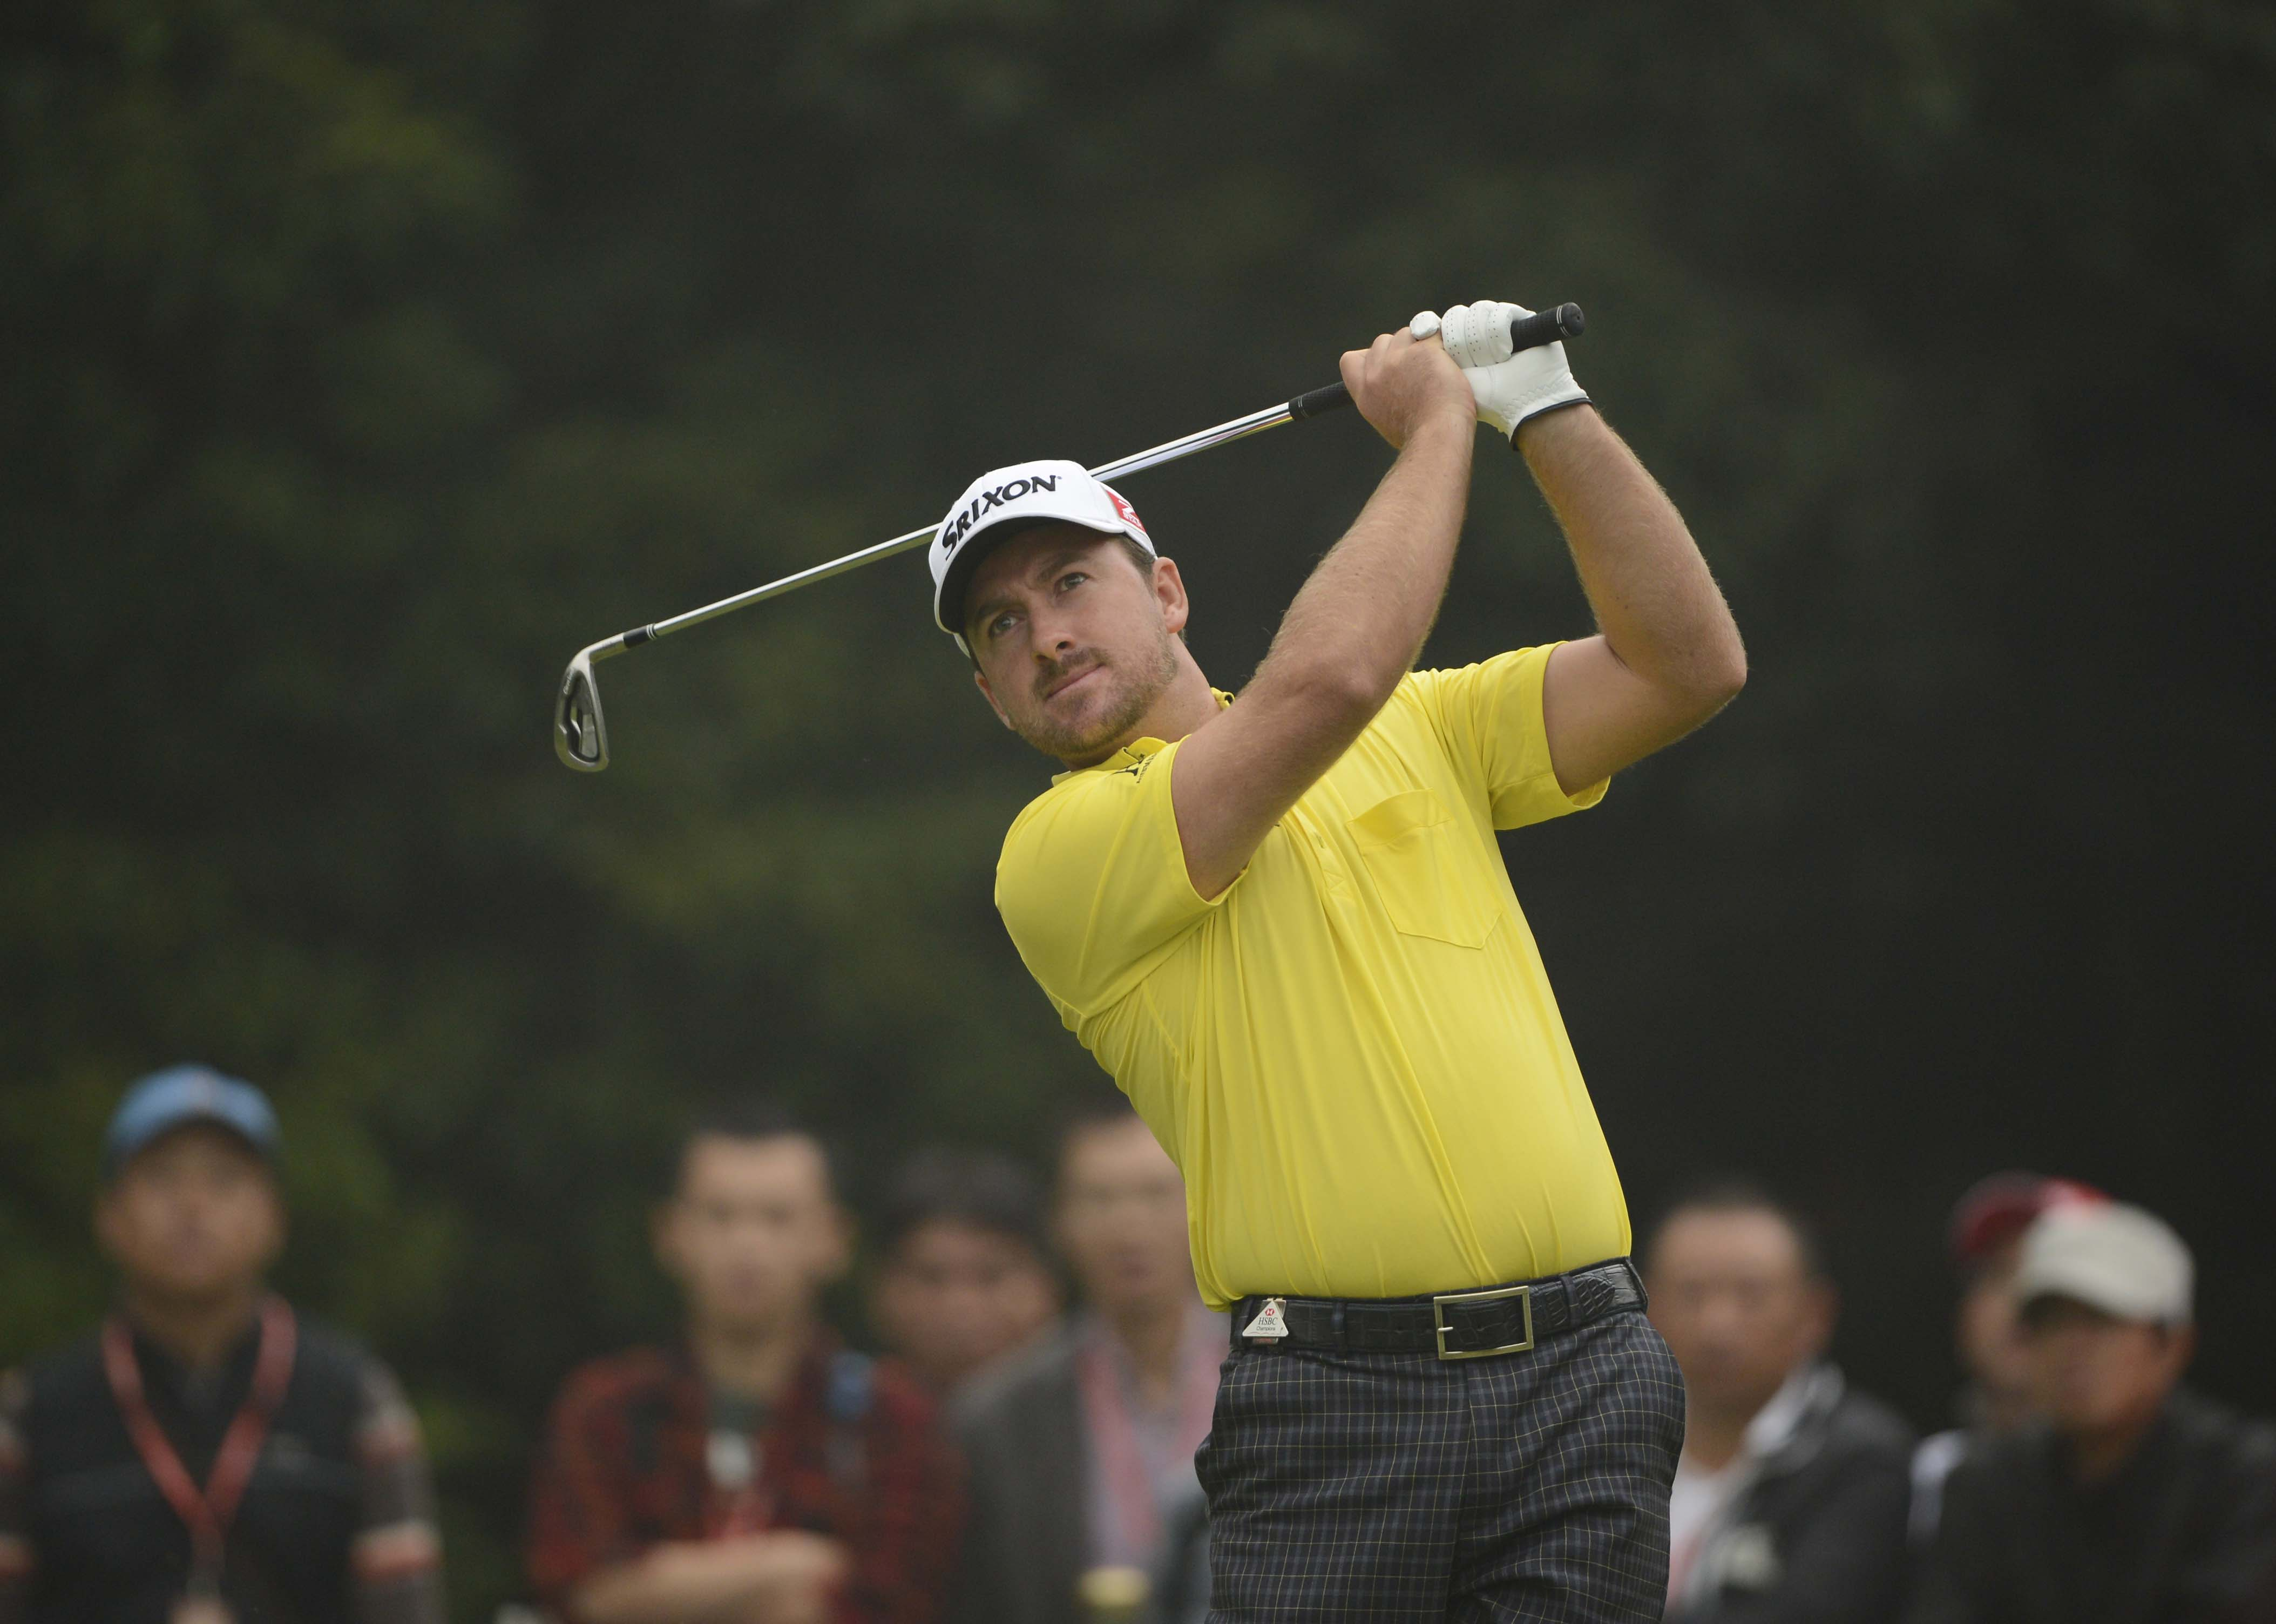 "Graeme McDowell had a share lead at one point on Sunday but couldn't keep up with the charging Dustin Johnson. ""He's just a quality, talented, very athletic, classy player,"" McDowell said of Johnson. ""Yeah, he makes mistakes. But when you've got a game as good as him, you can get away with a few mistakes. He's just got a great wedge game to go with just an outrageously good driving game."""